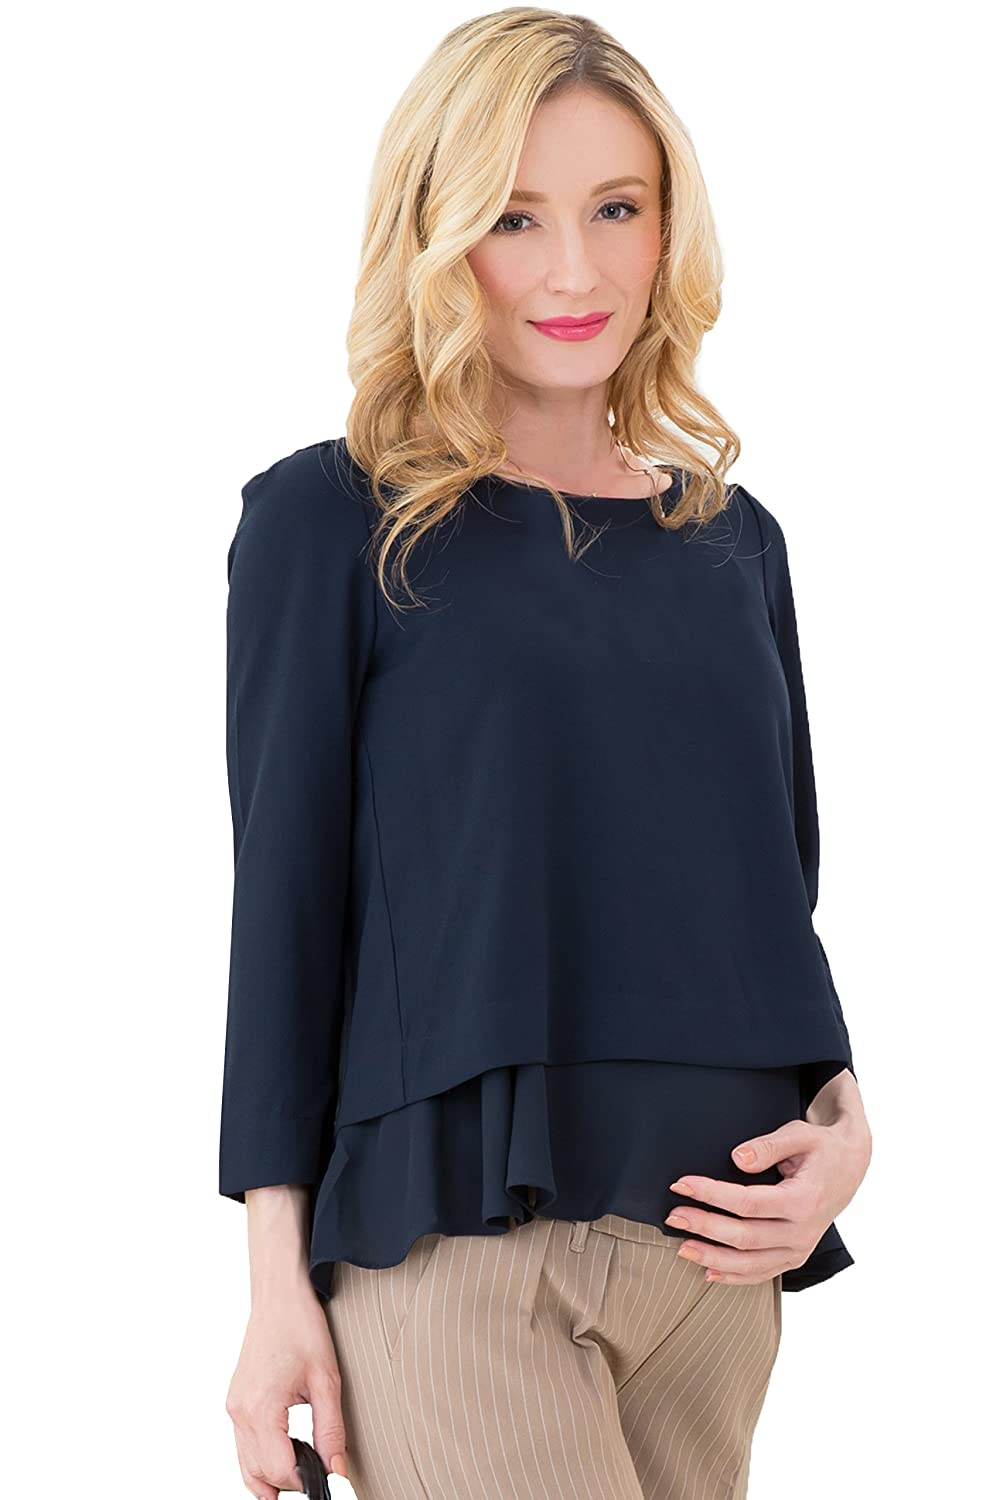 Sweet Mommy Maternity and Nursing Layered Georgette Top Office Blouse with Chiffon Hem Sweet Mommy Co. Ltd. st5116